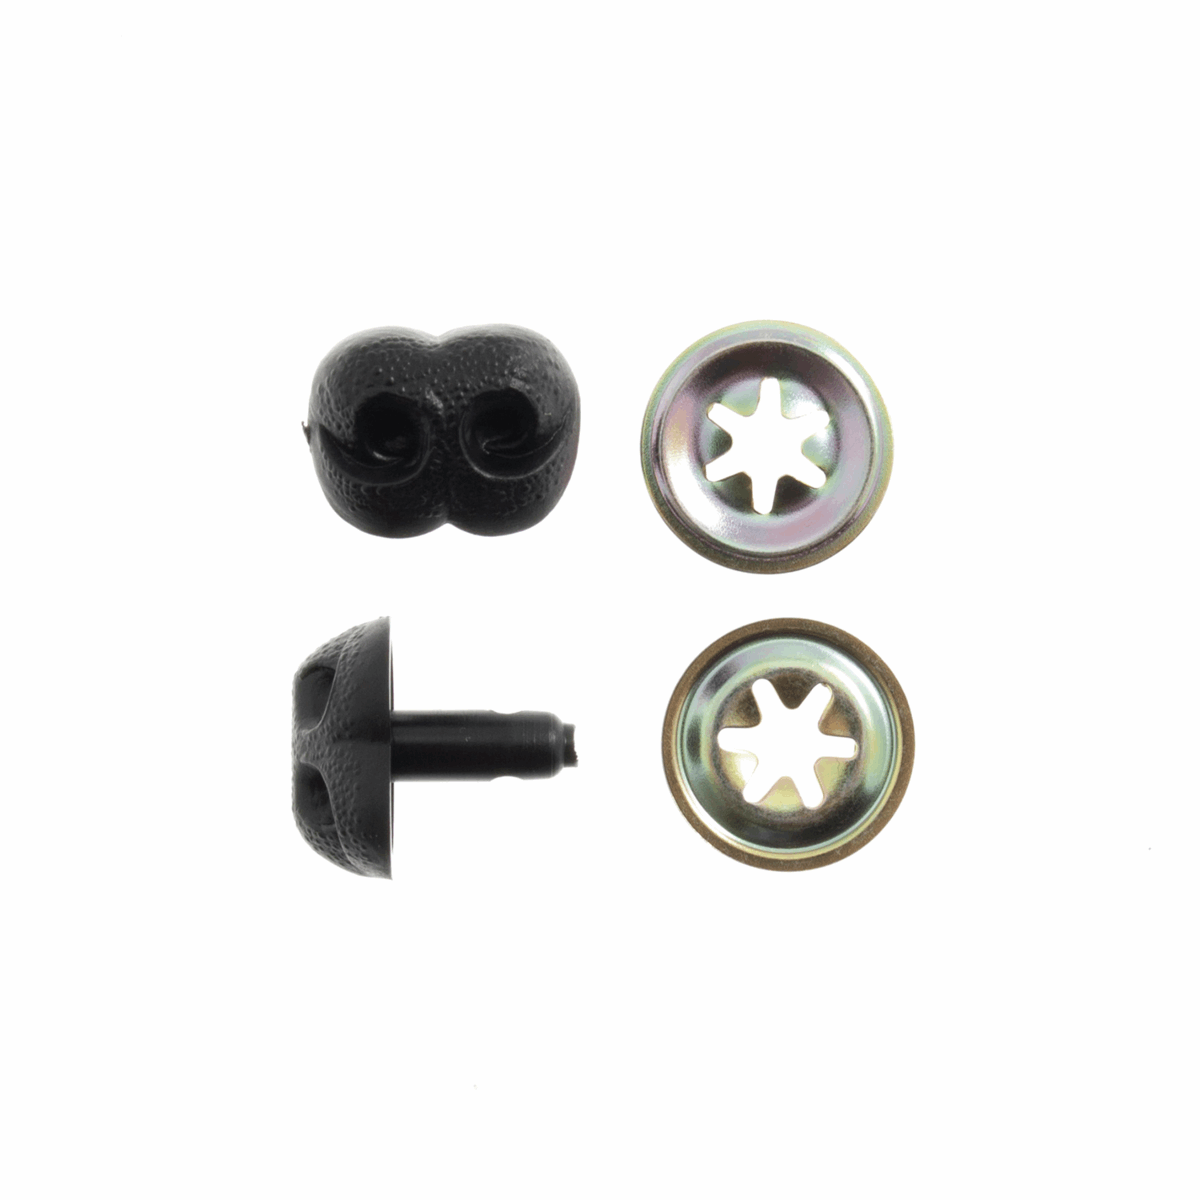 Picture of Toy Noses: Animal/Dog: 12mm: Black: 4 Pack